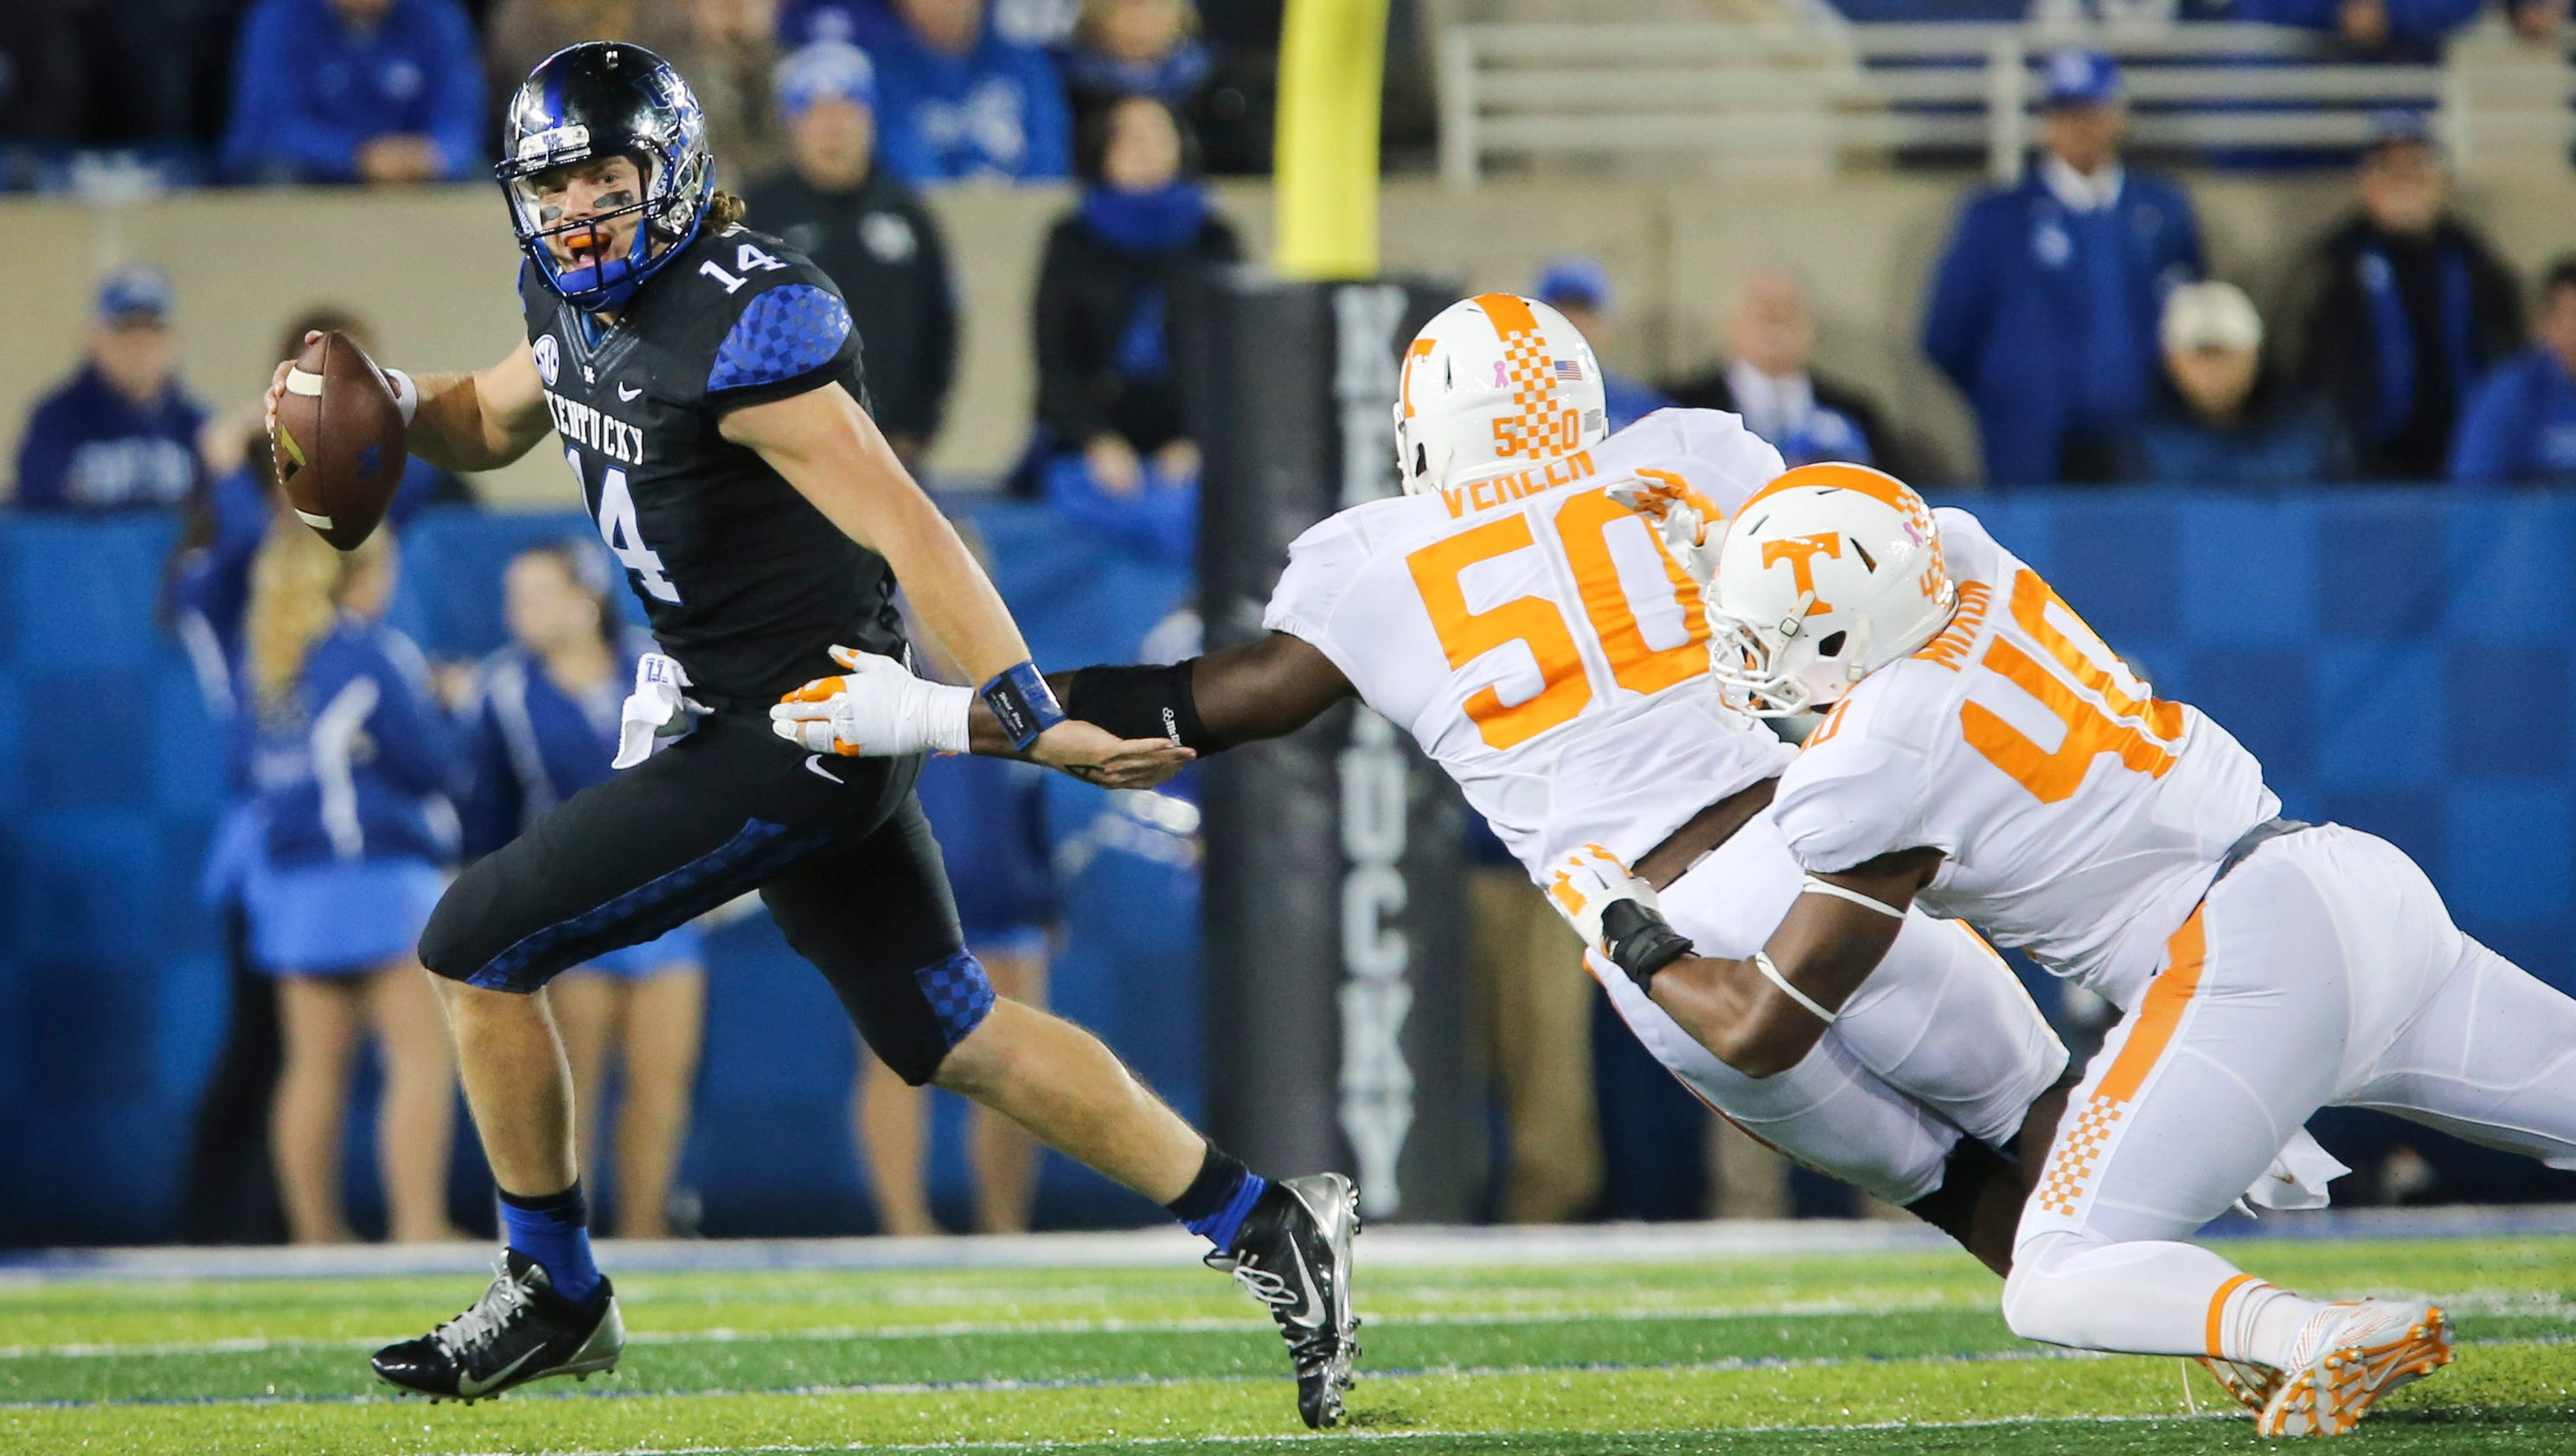 Kentucky Football | Live updates as the Cats host the Vols